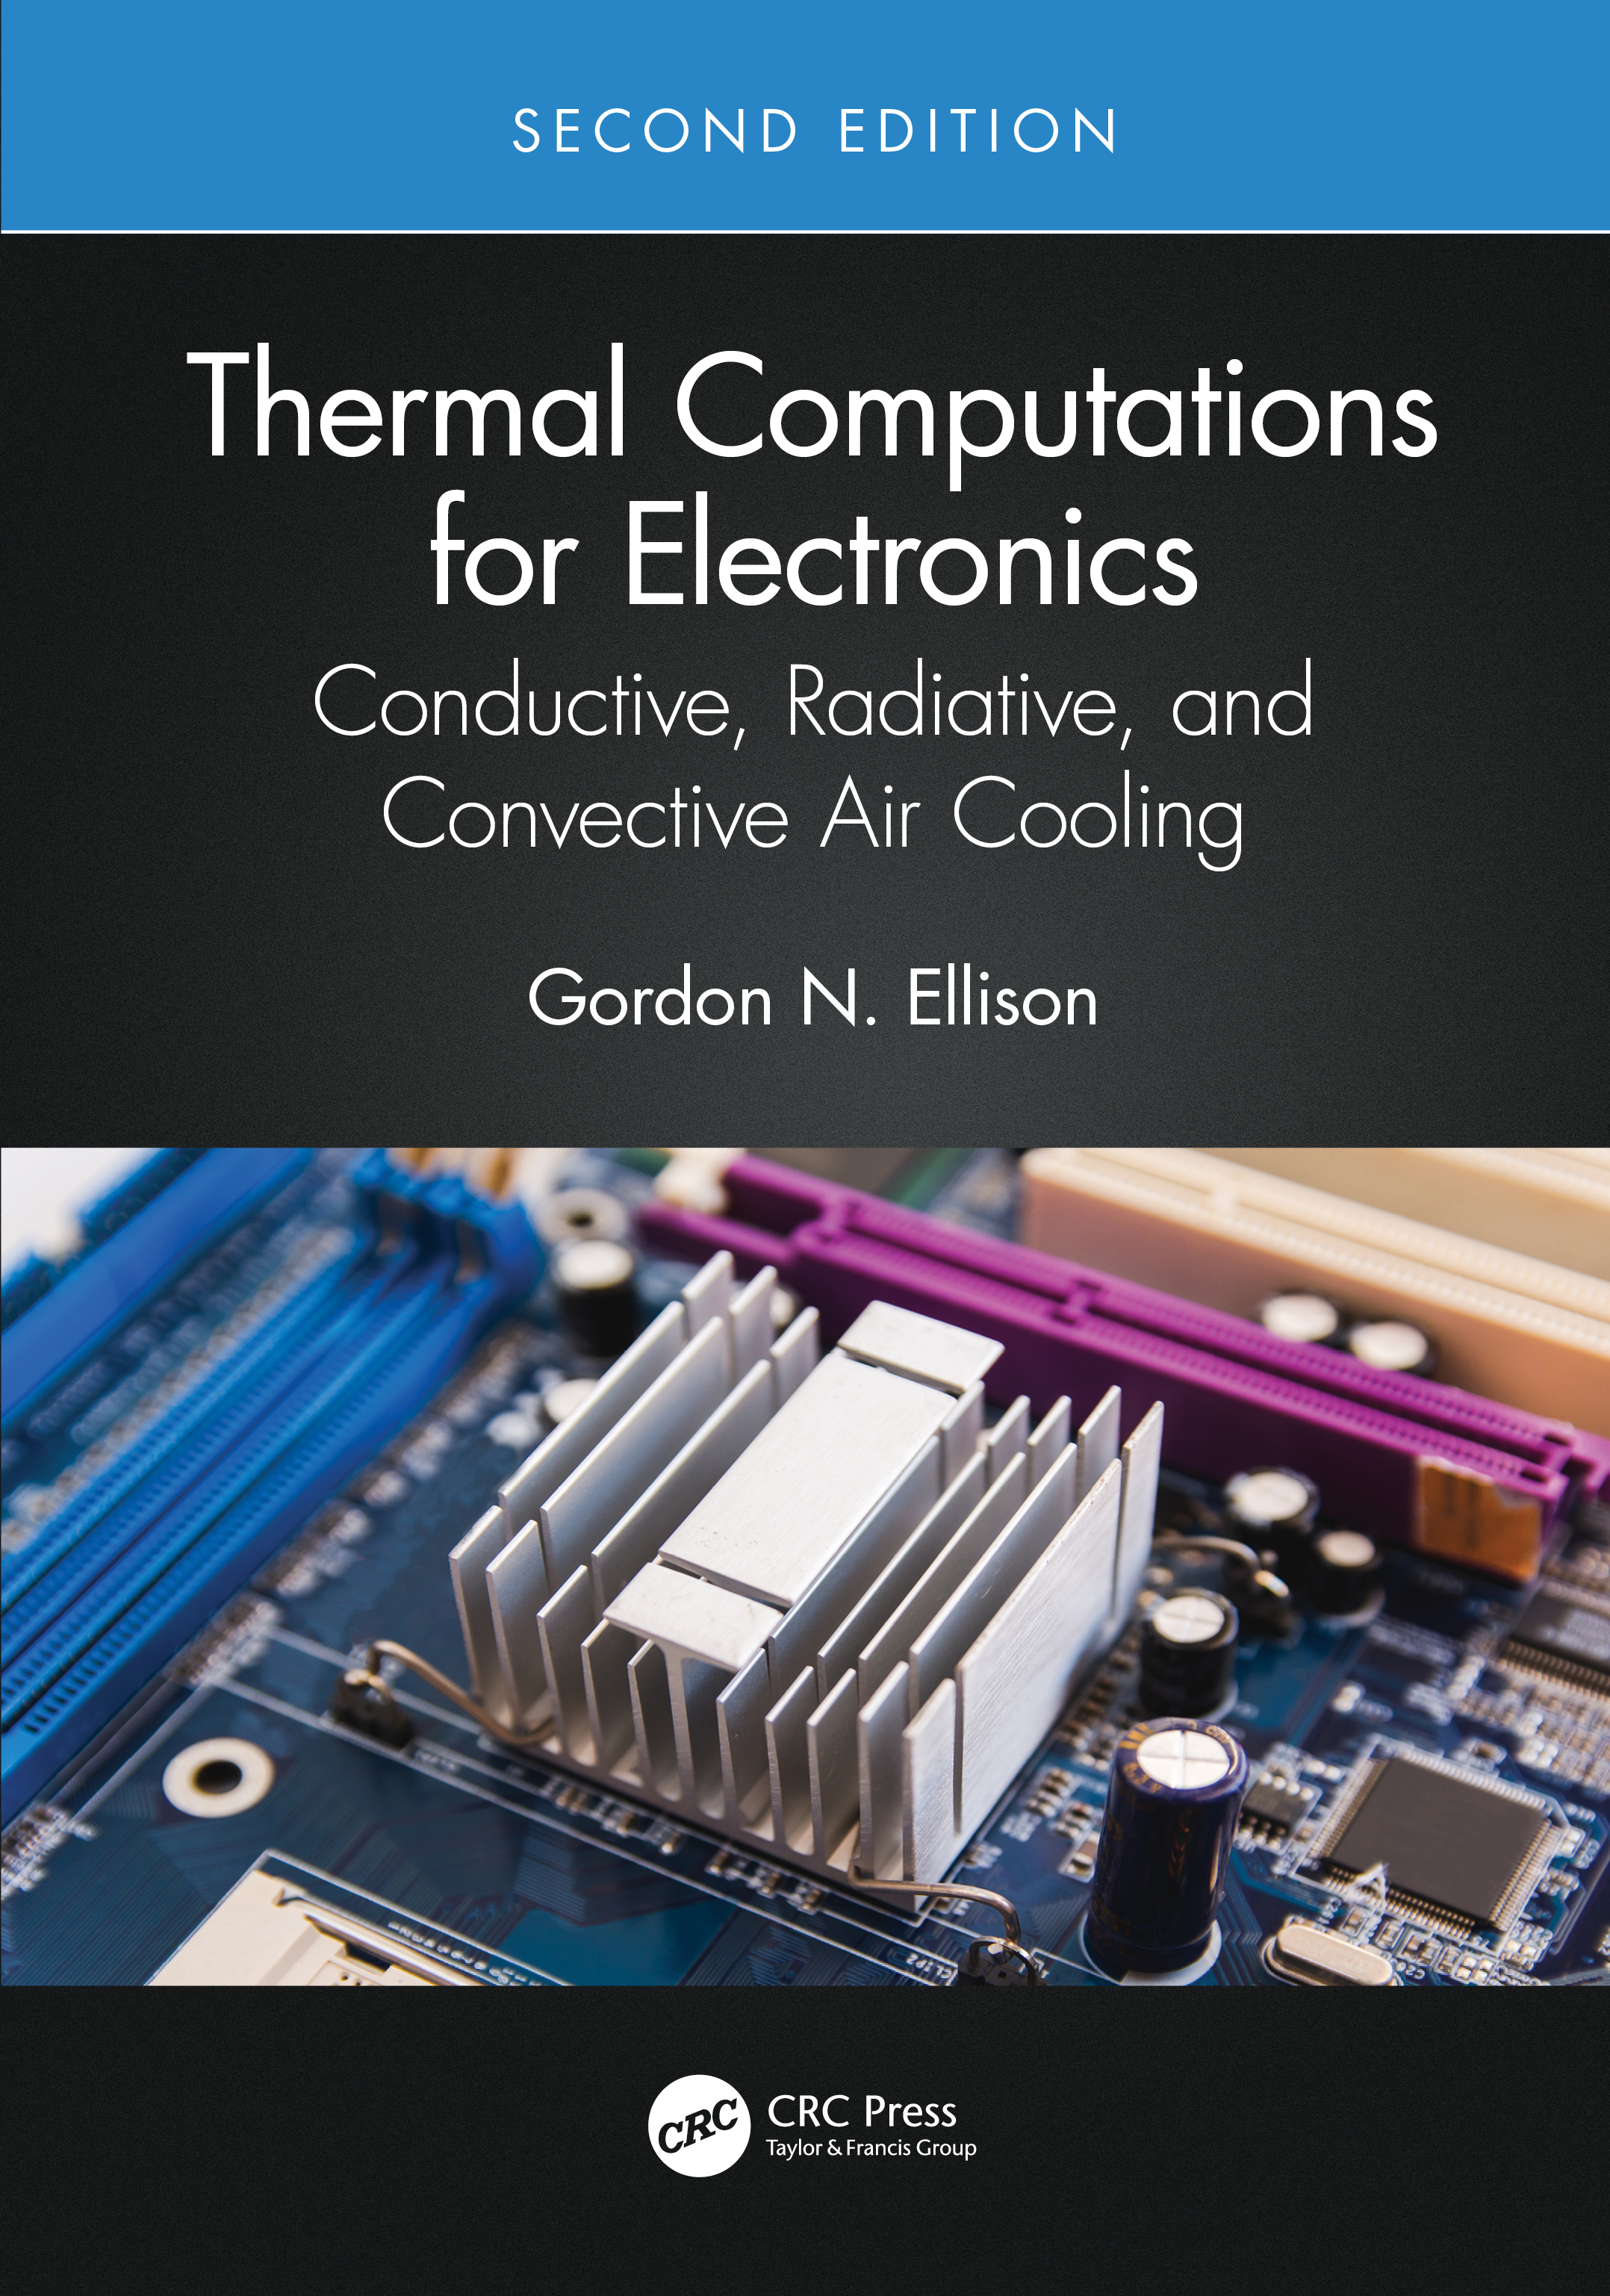 Thermal Computations for Electronics: Conductive, Radiative, and Convective Air Cooling book cover